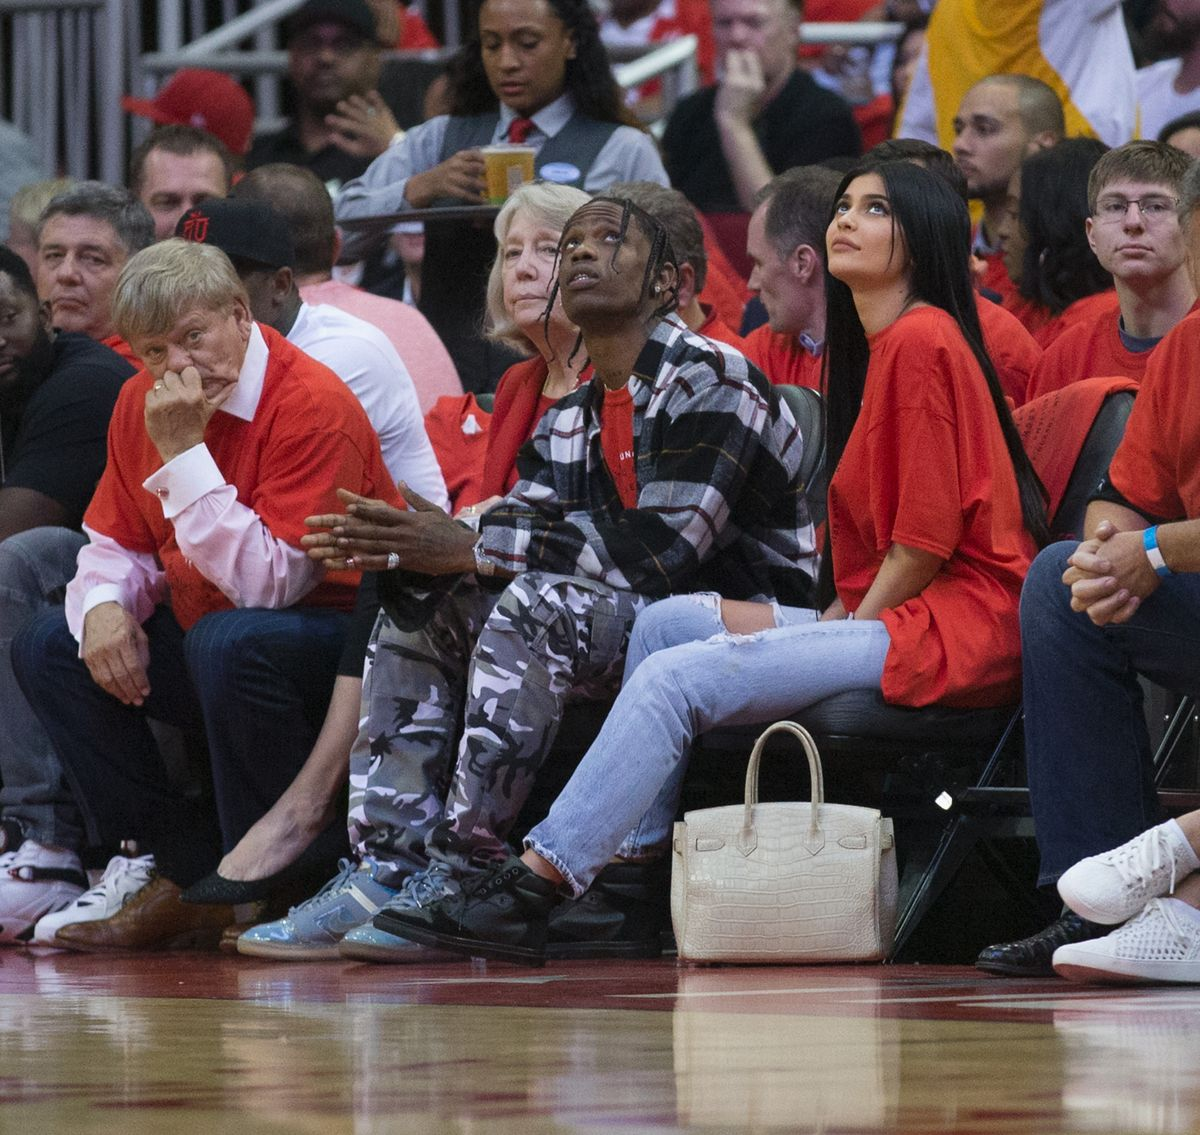 Houston Rockets Upcoming Home Games: KYLIE JENNER At Houston Rockets Game 04/25/2017